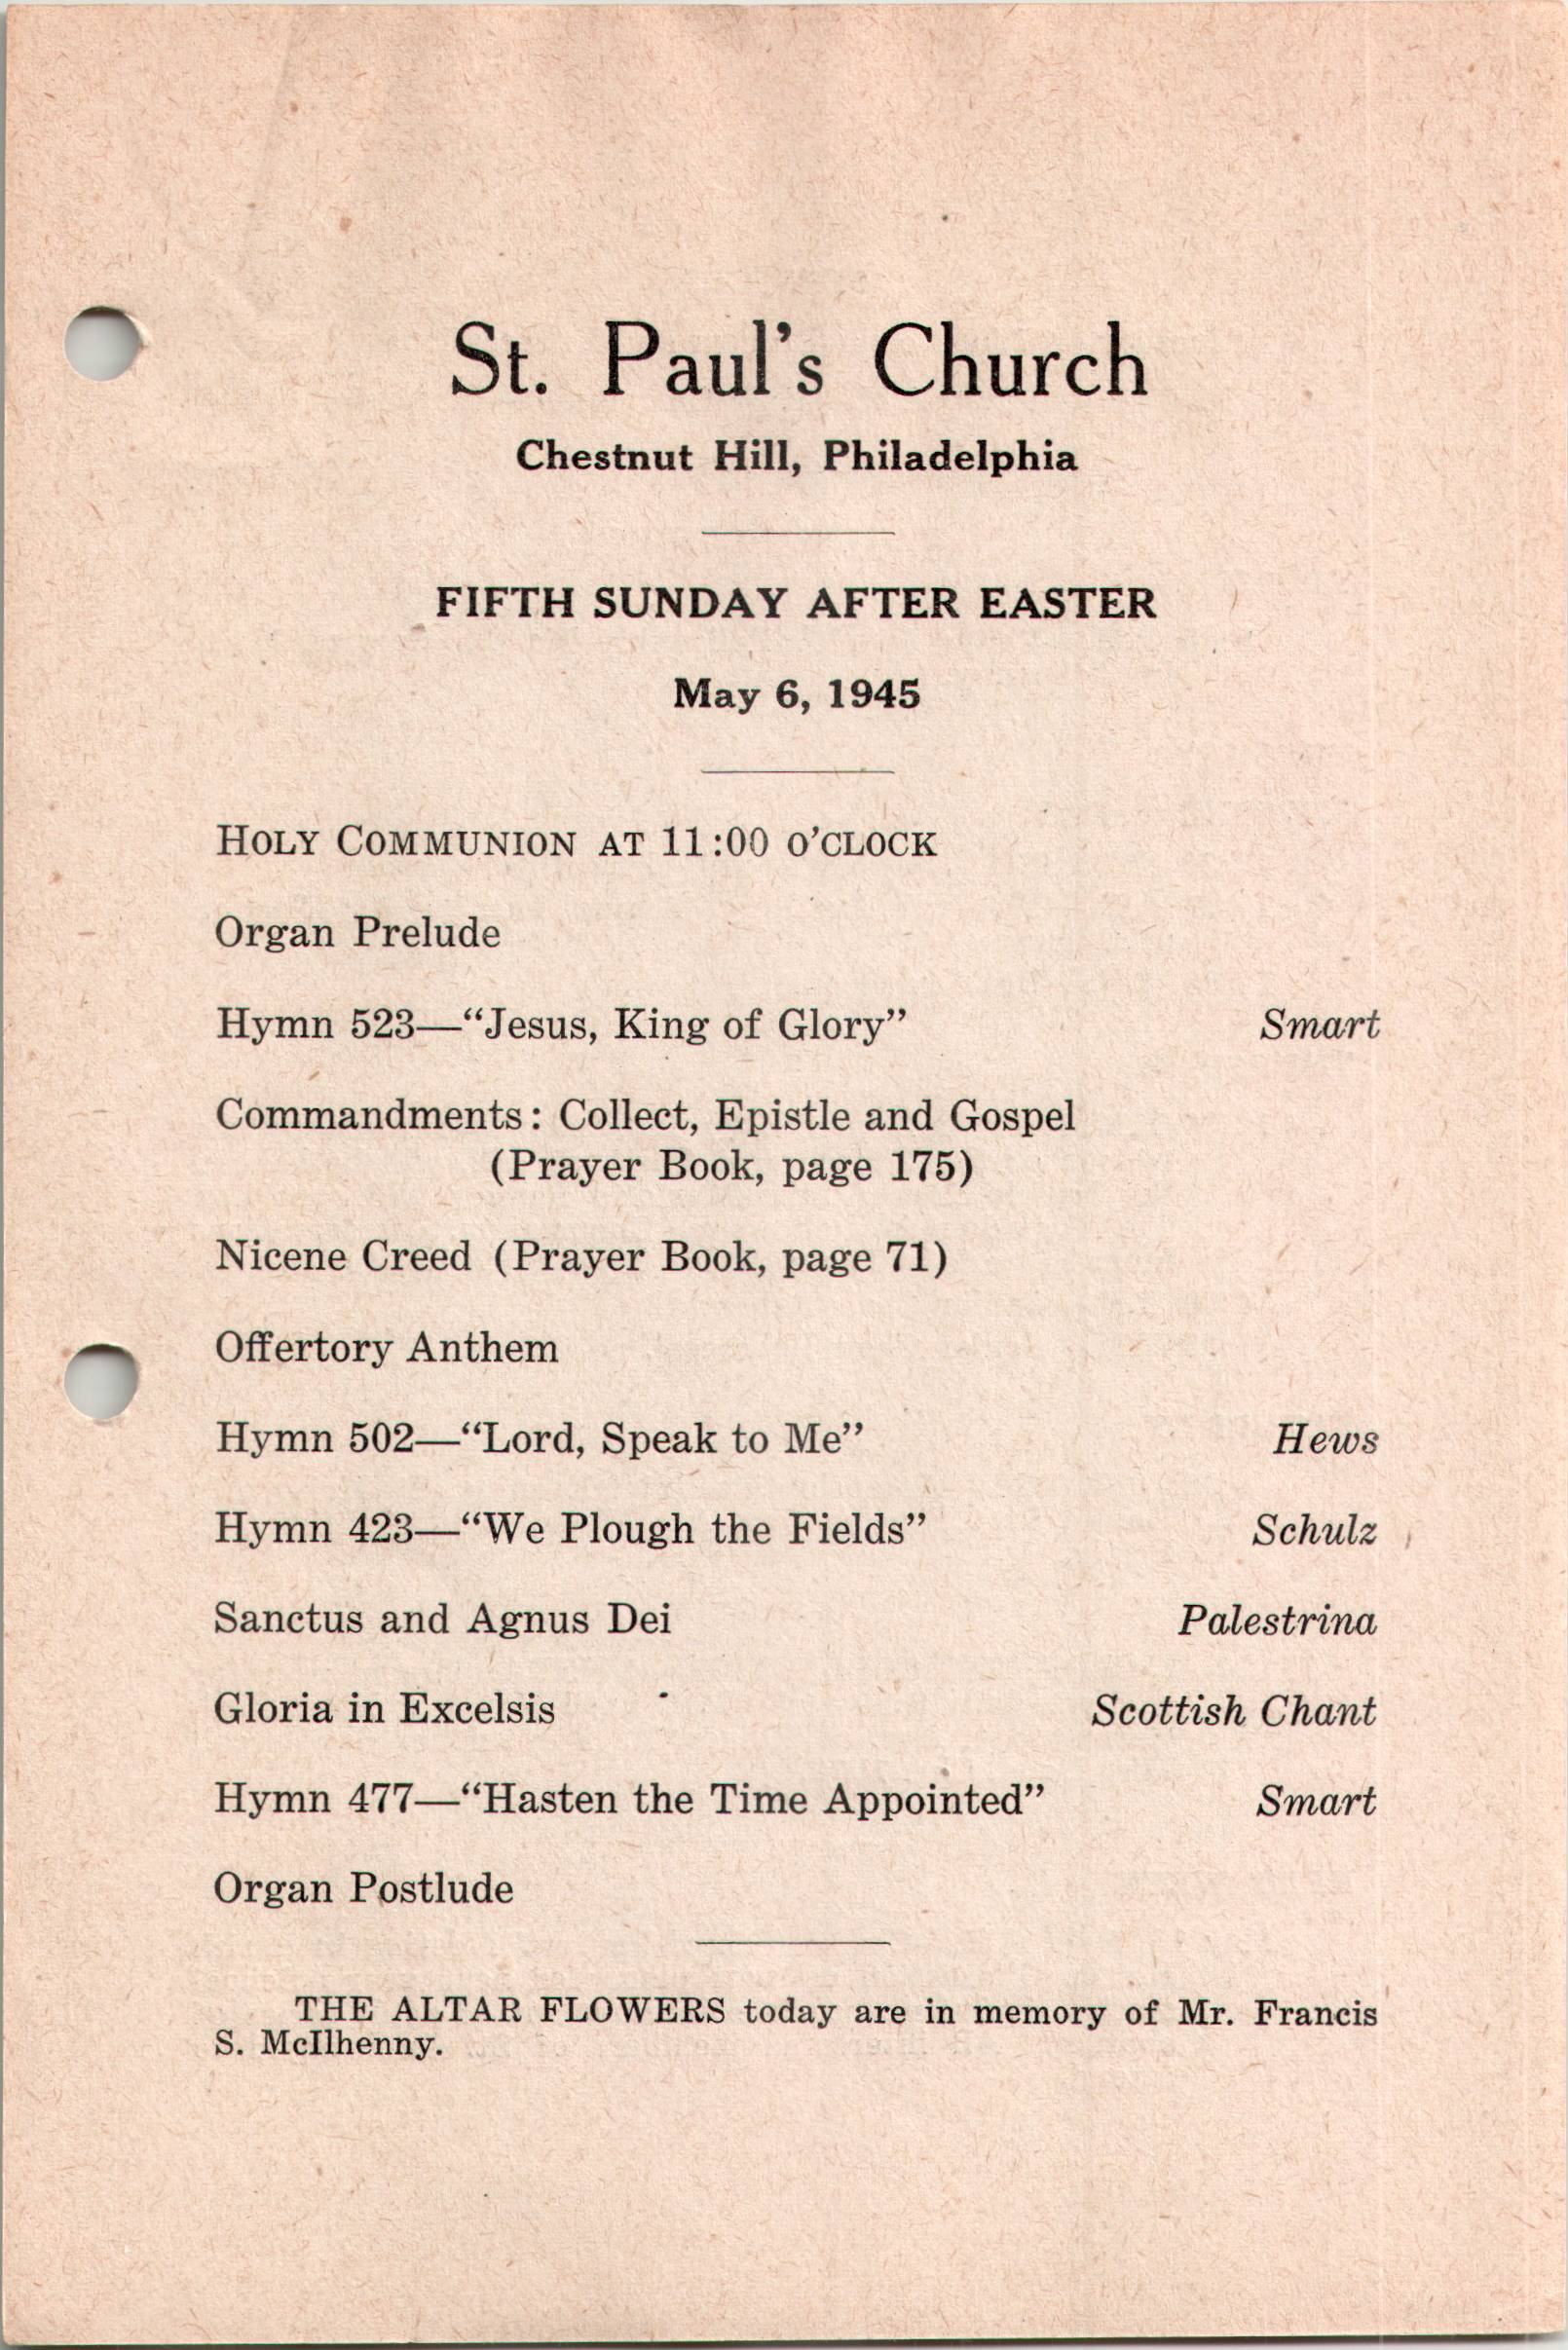 Service Leaflet for the Fifth Sunday after Easter at St  Paul's Church